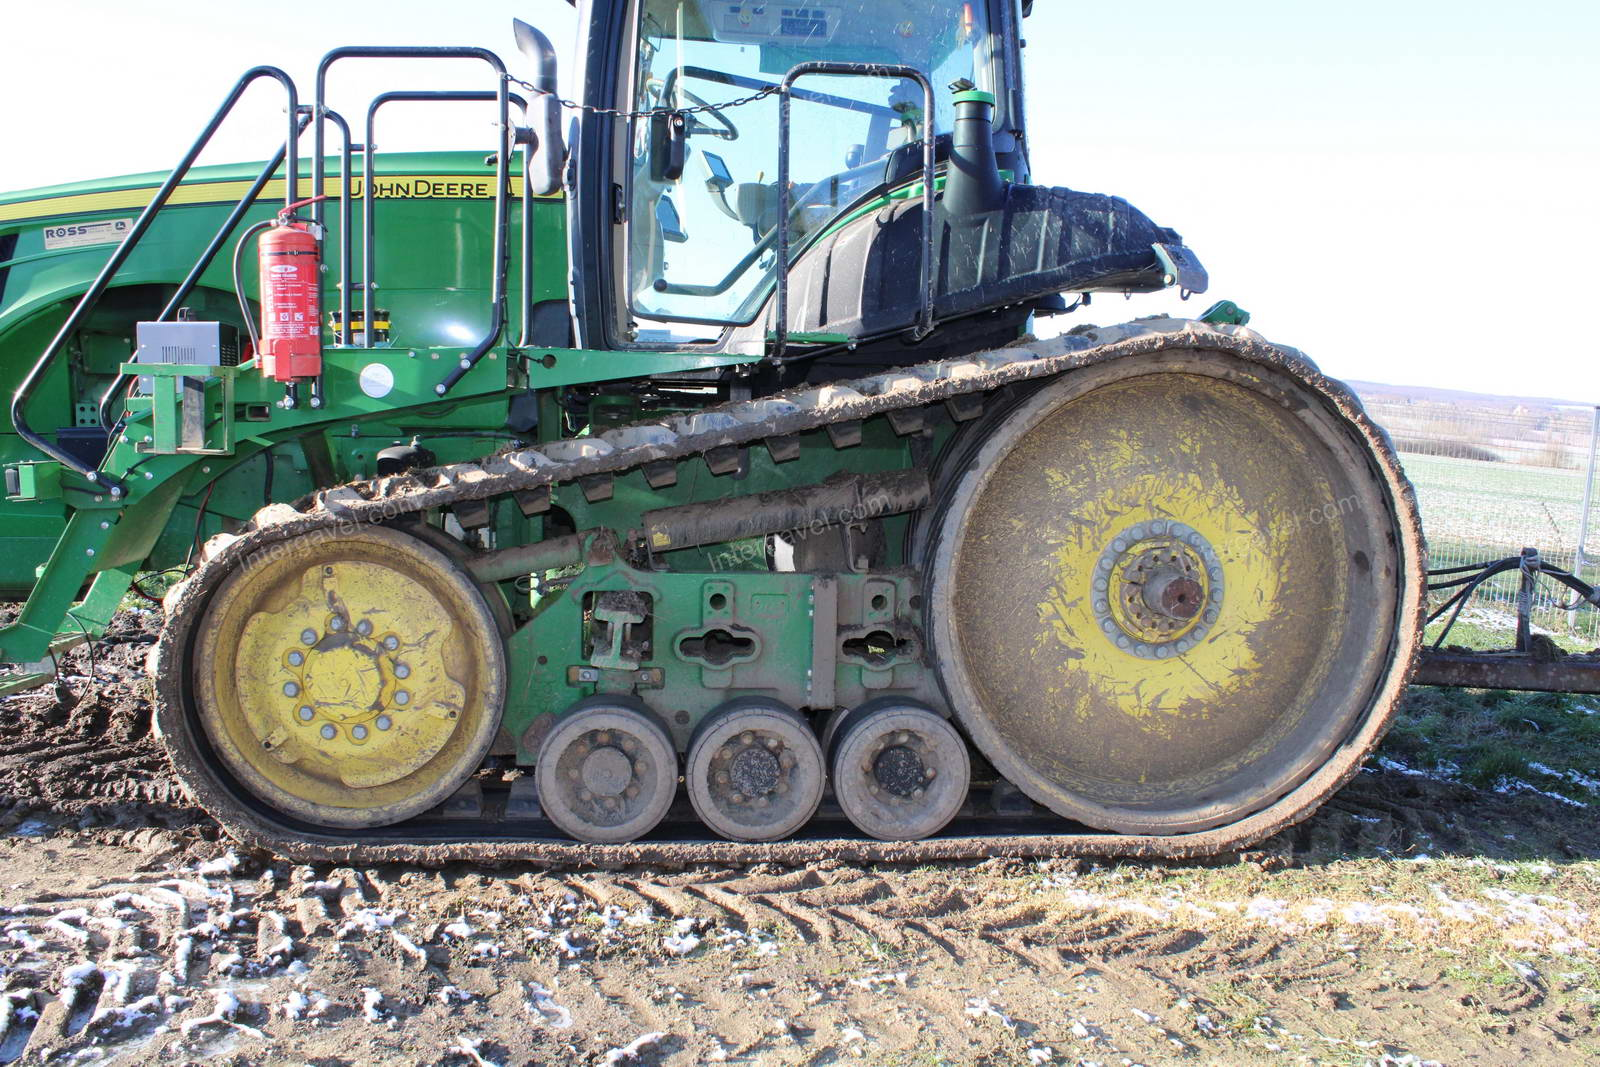 Tractor - rubber track